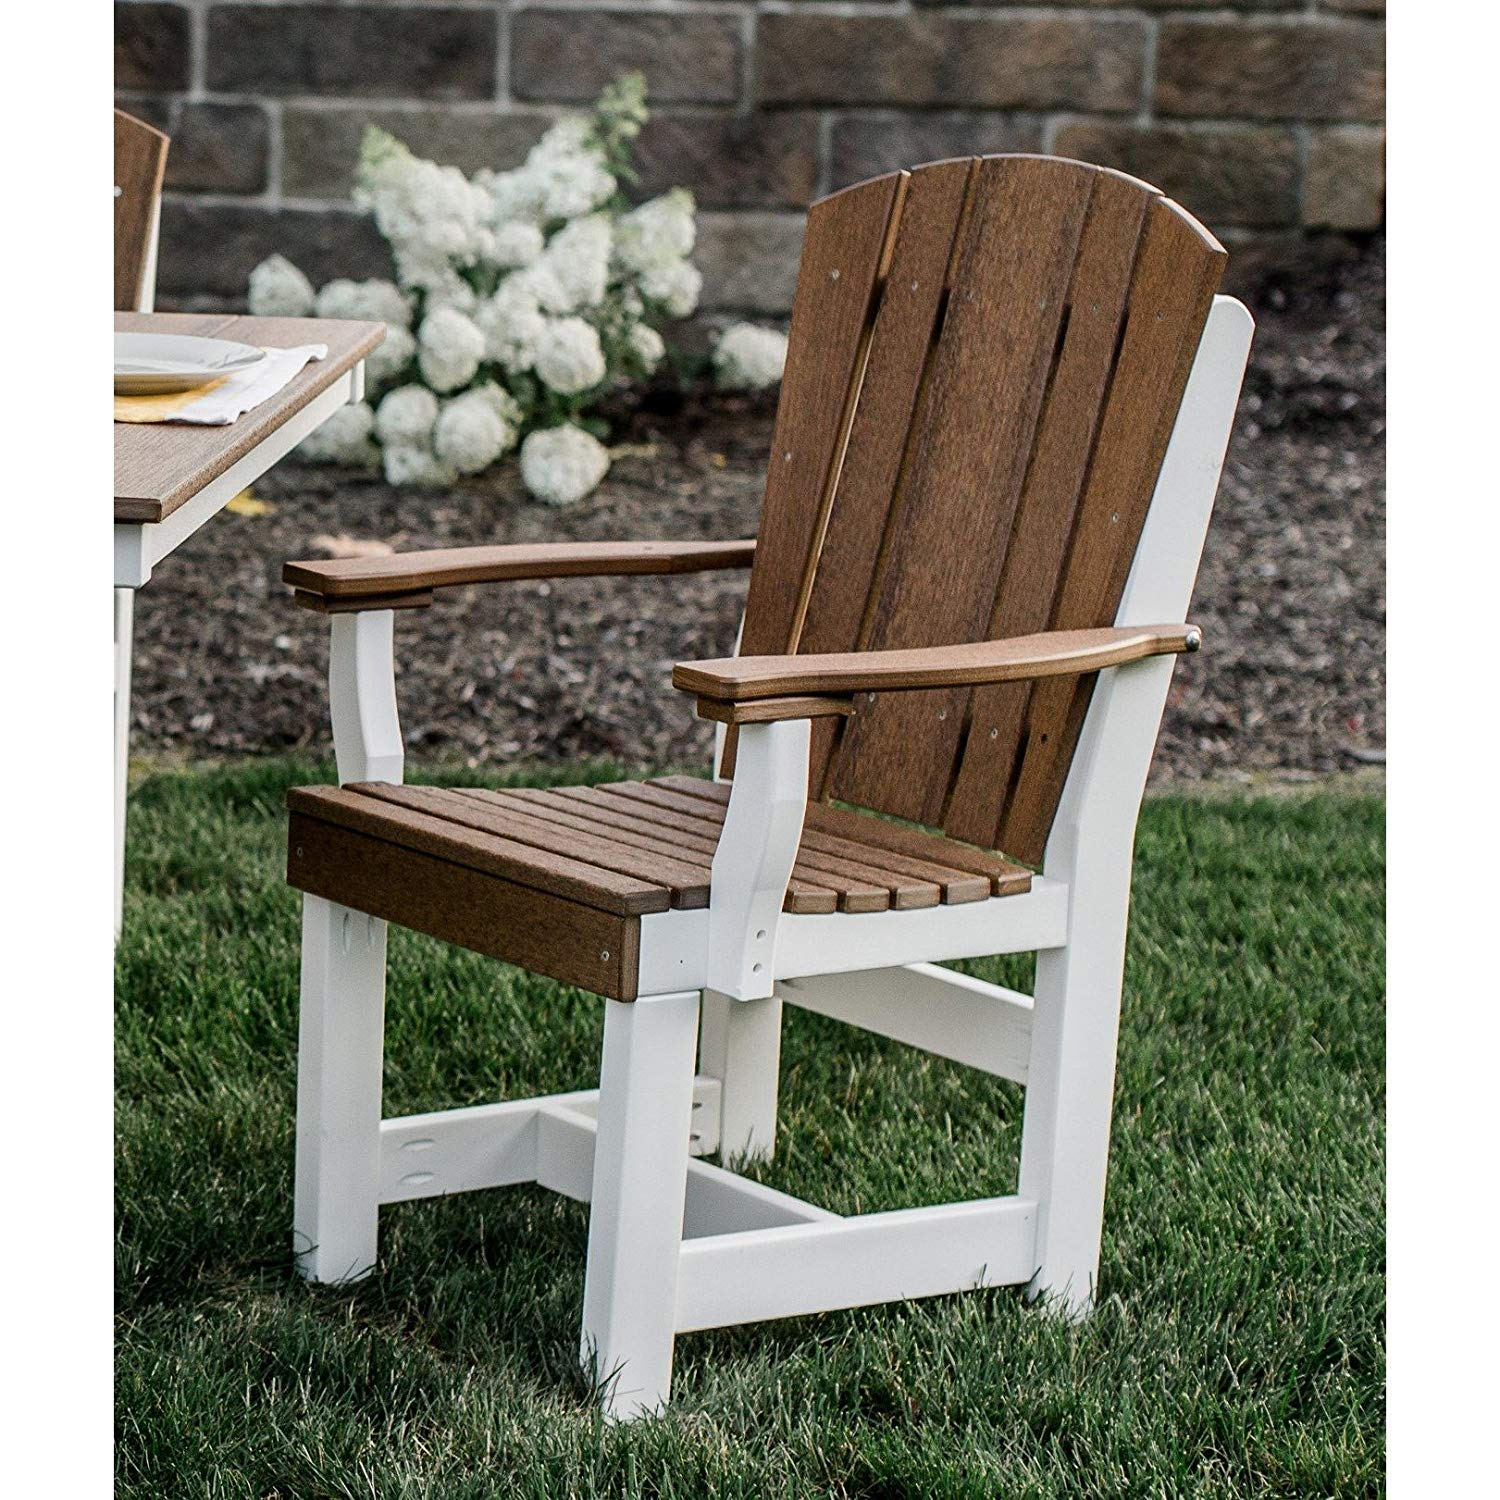 Wildridge Heritage Outdoor Dining Chair with Arms - Ships in 10-14 Business Days